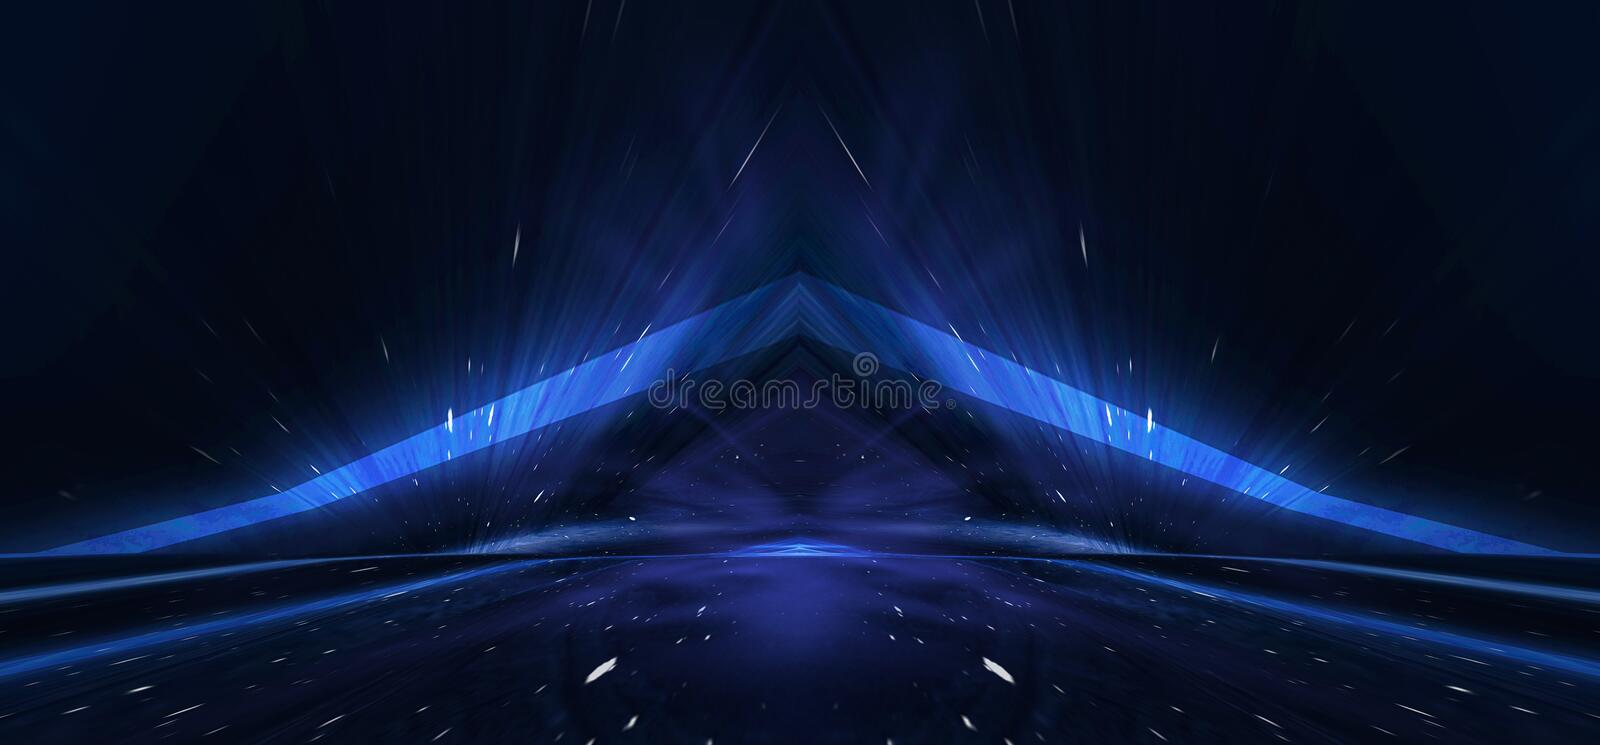 Background wall with neon lines and rays. Background of an empty dark corridor with neon light. Abstract background with lines and vector illustration